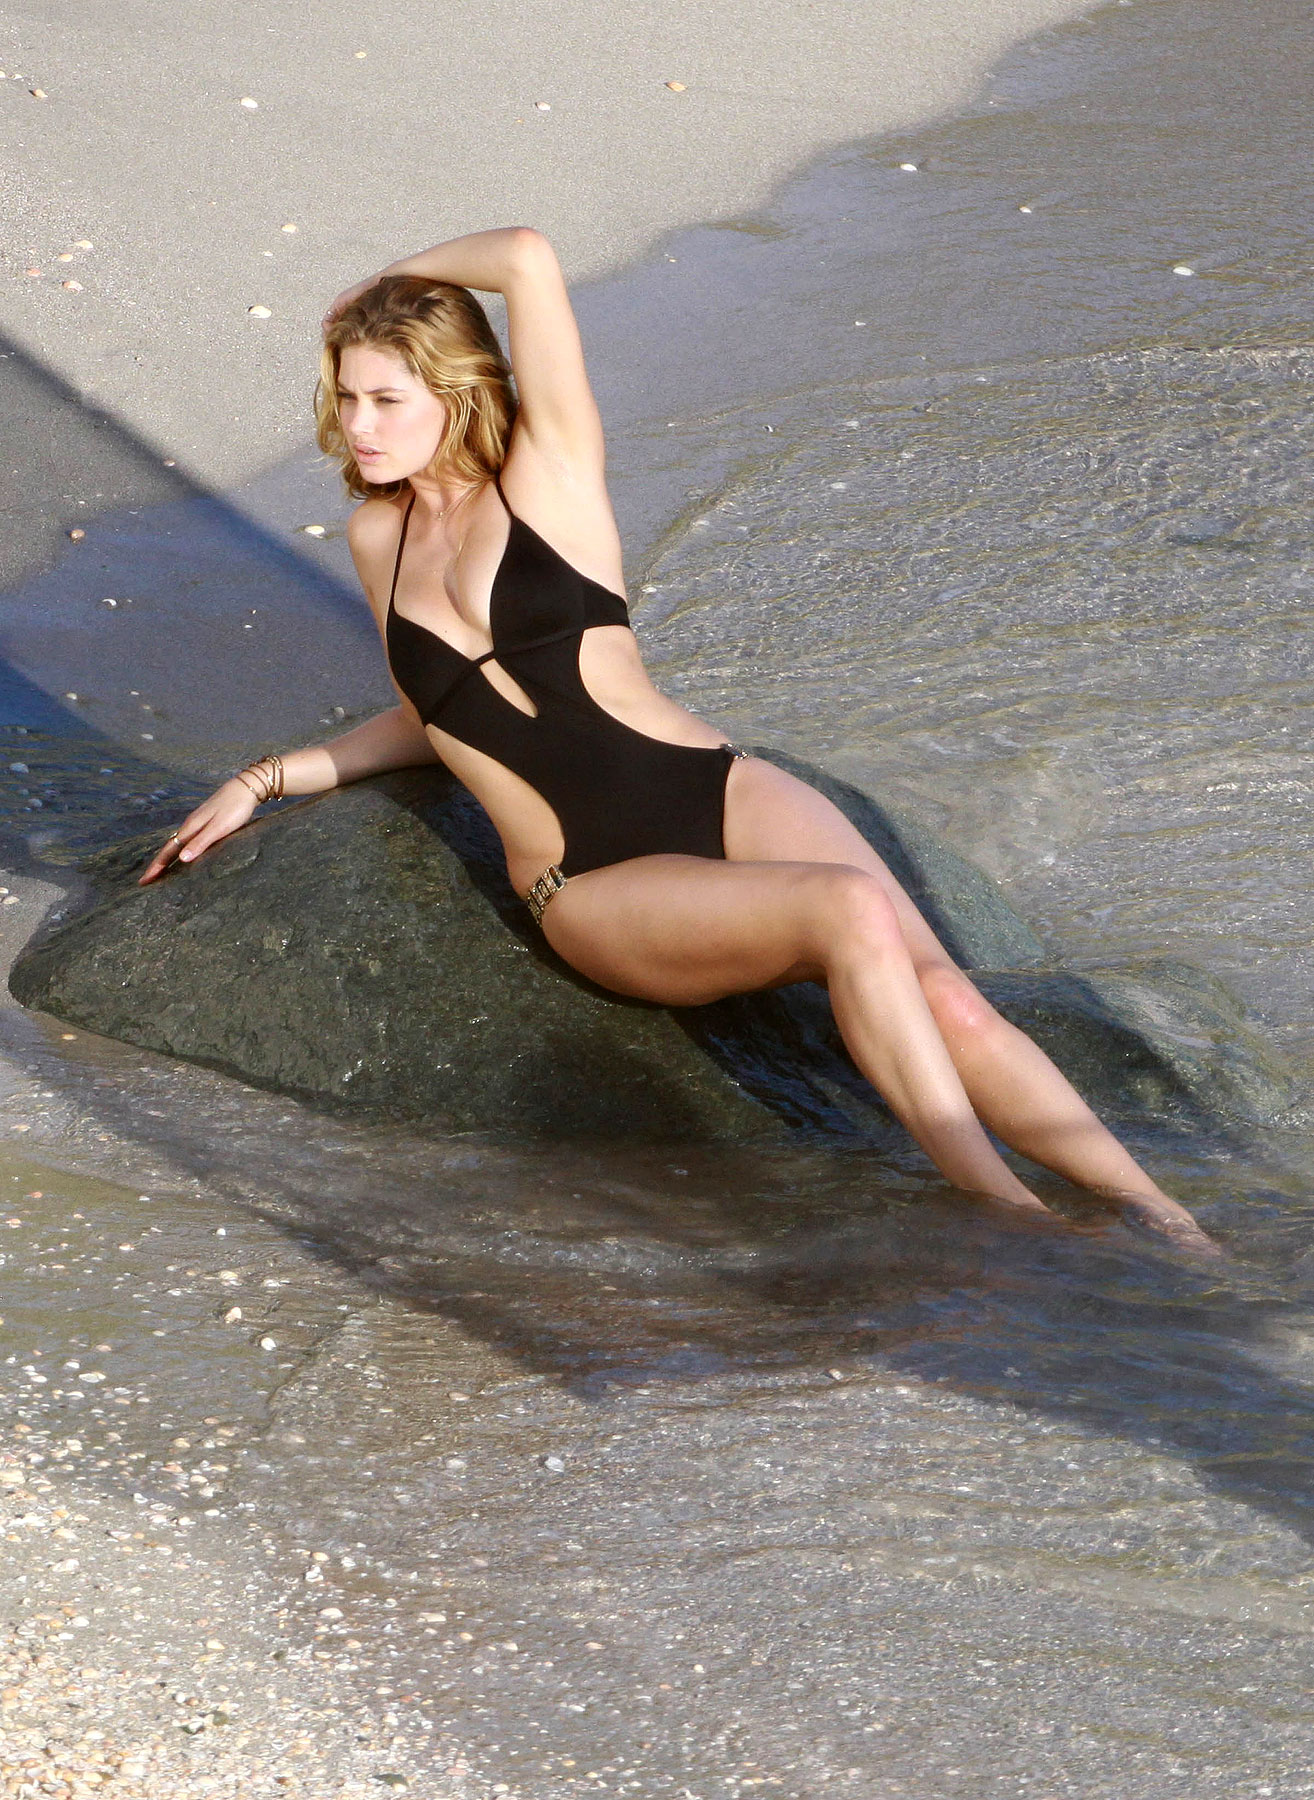 PHOTO GALLERY: Doutzen Kroes Models Swimsuits